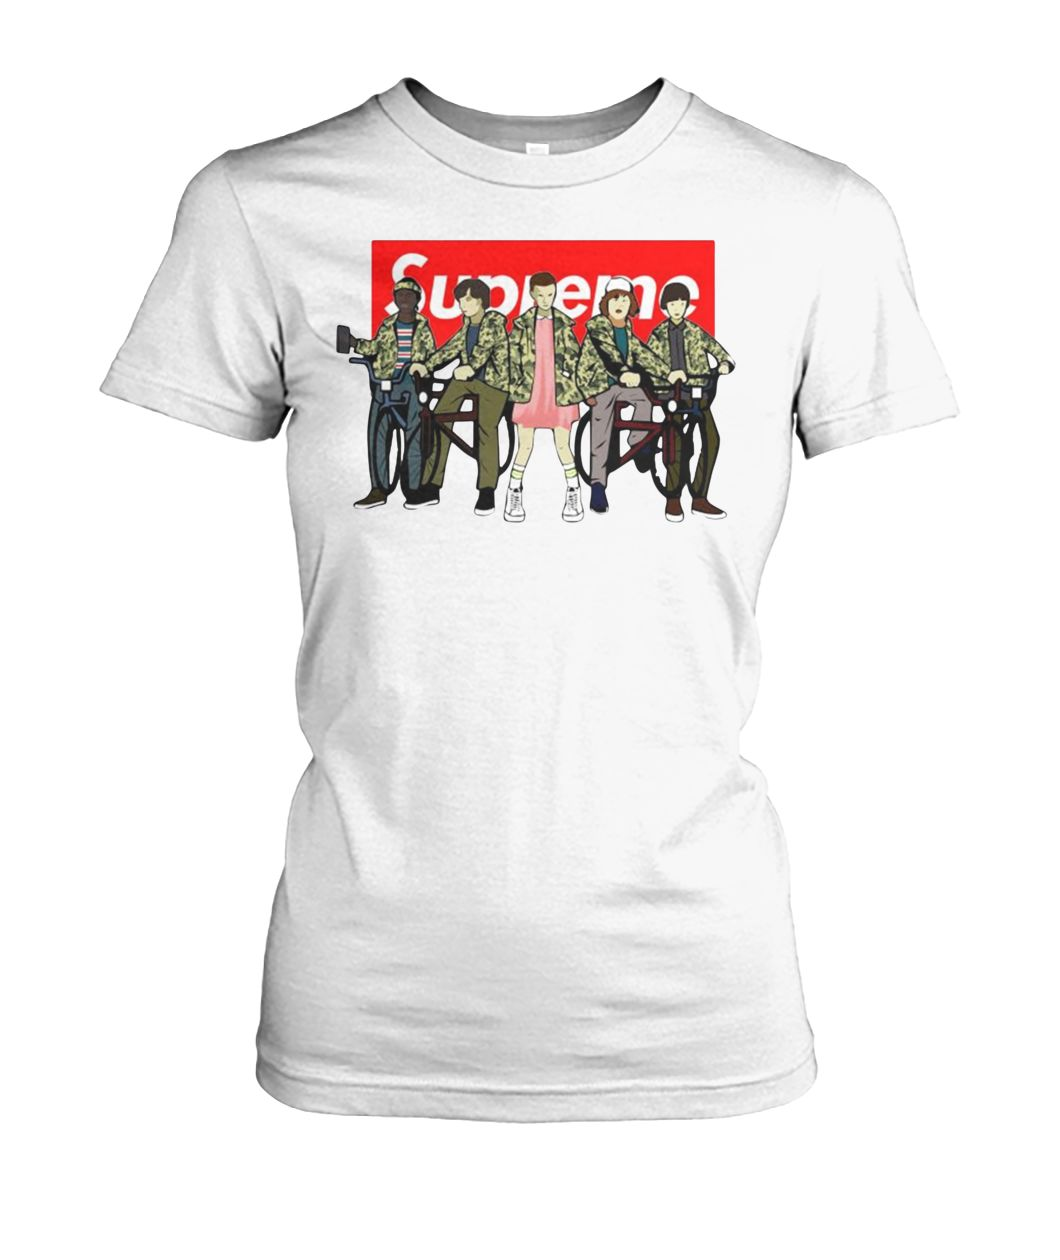 Stranger things supreme women's crew tee